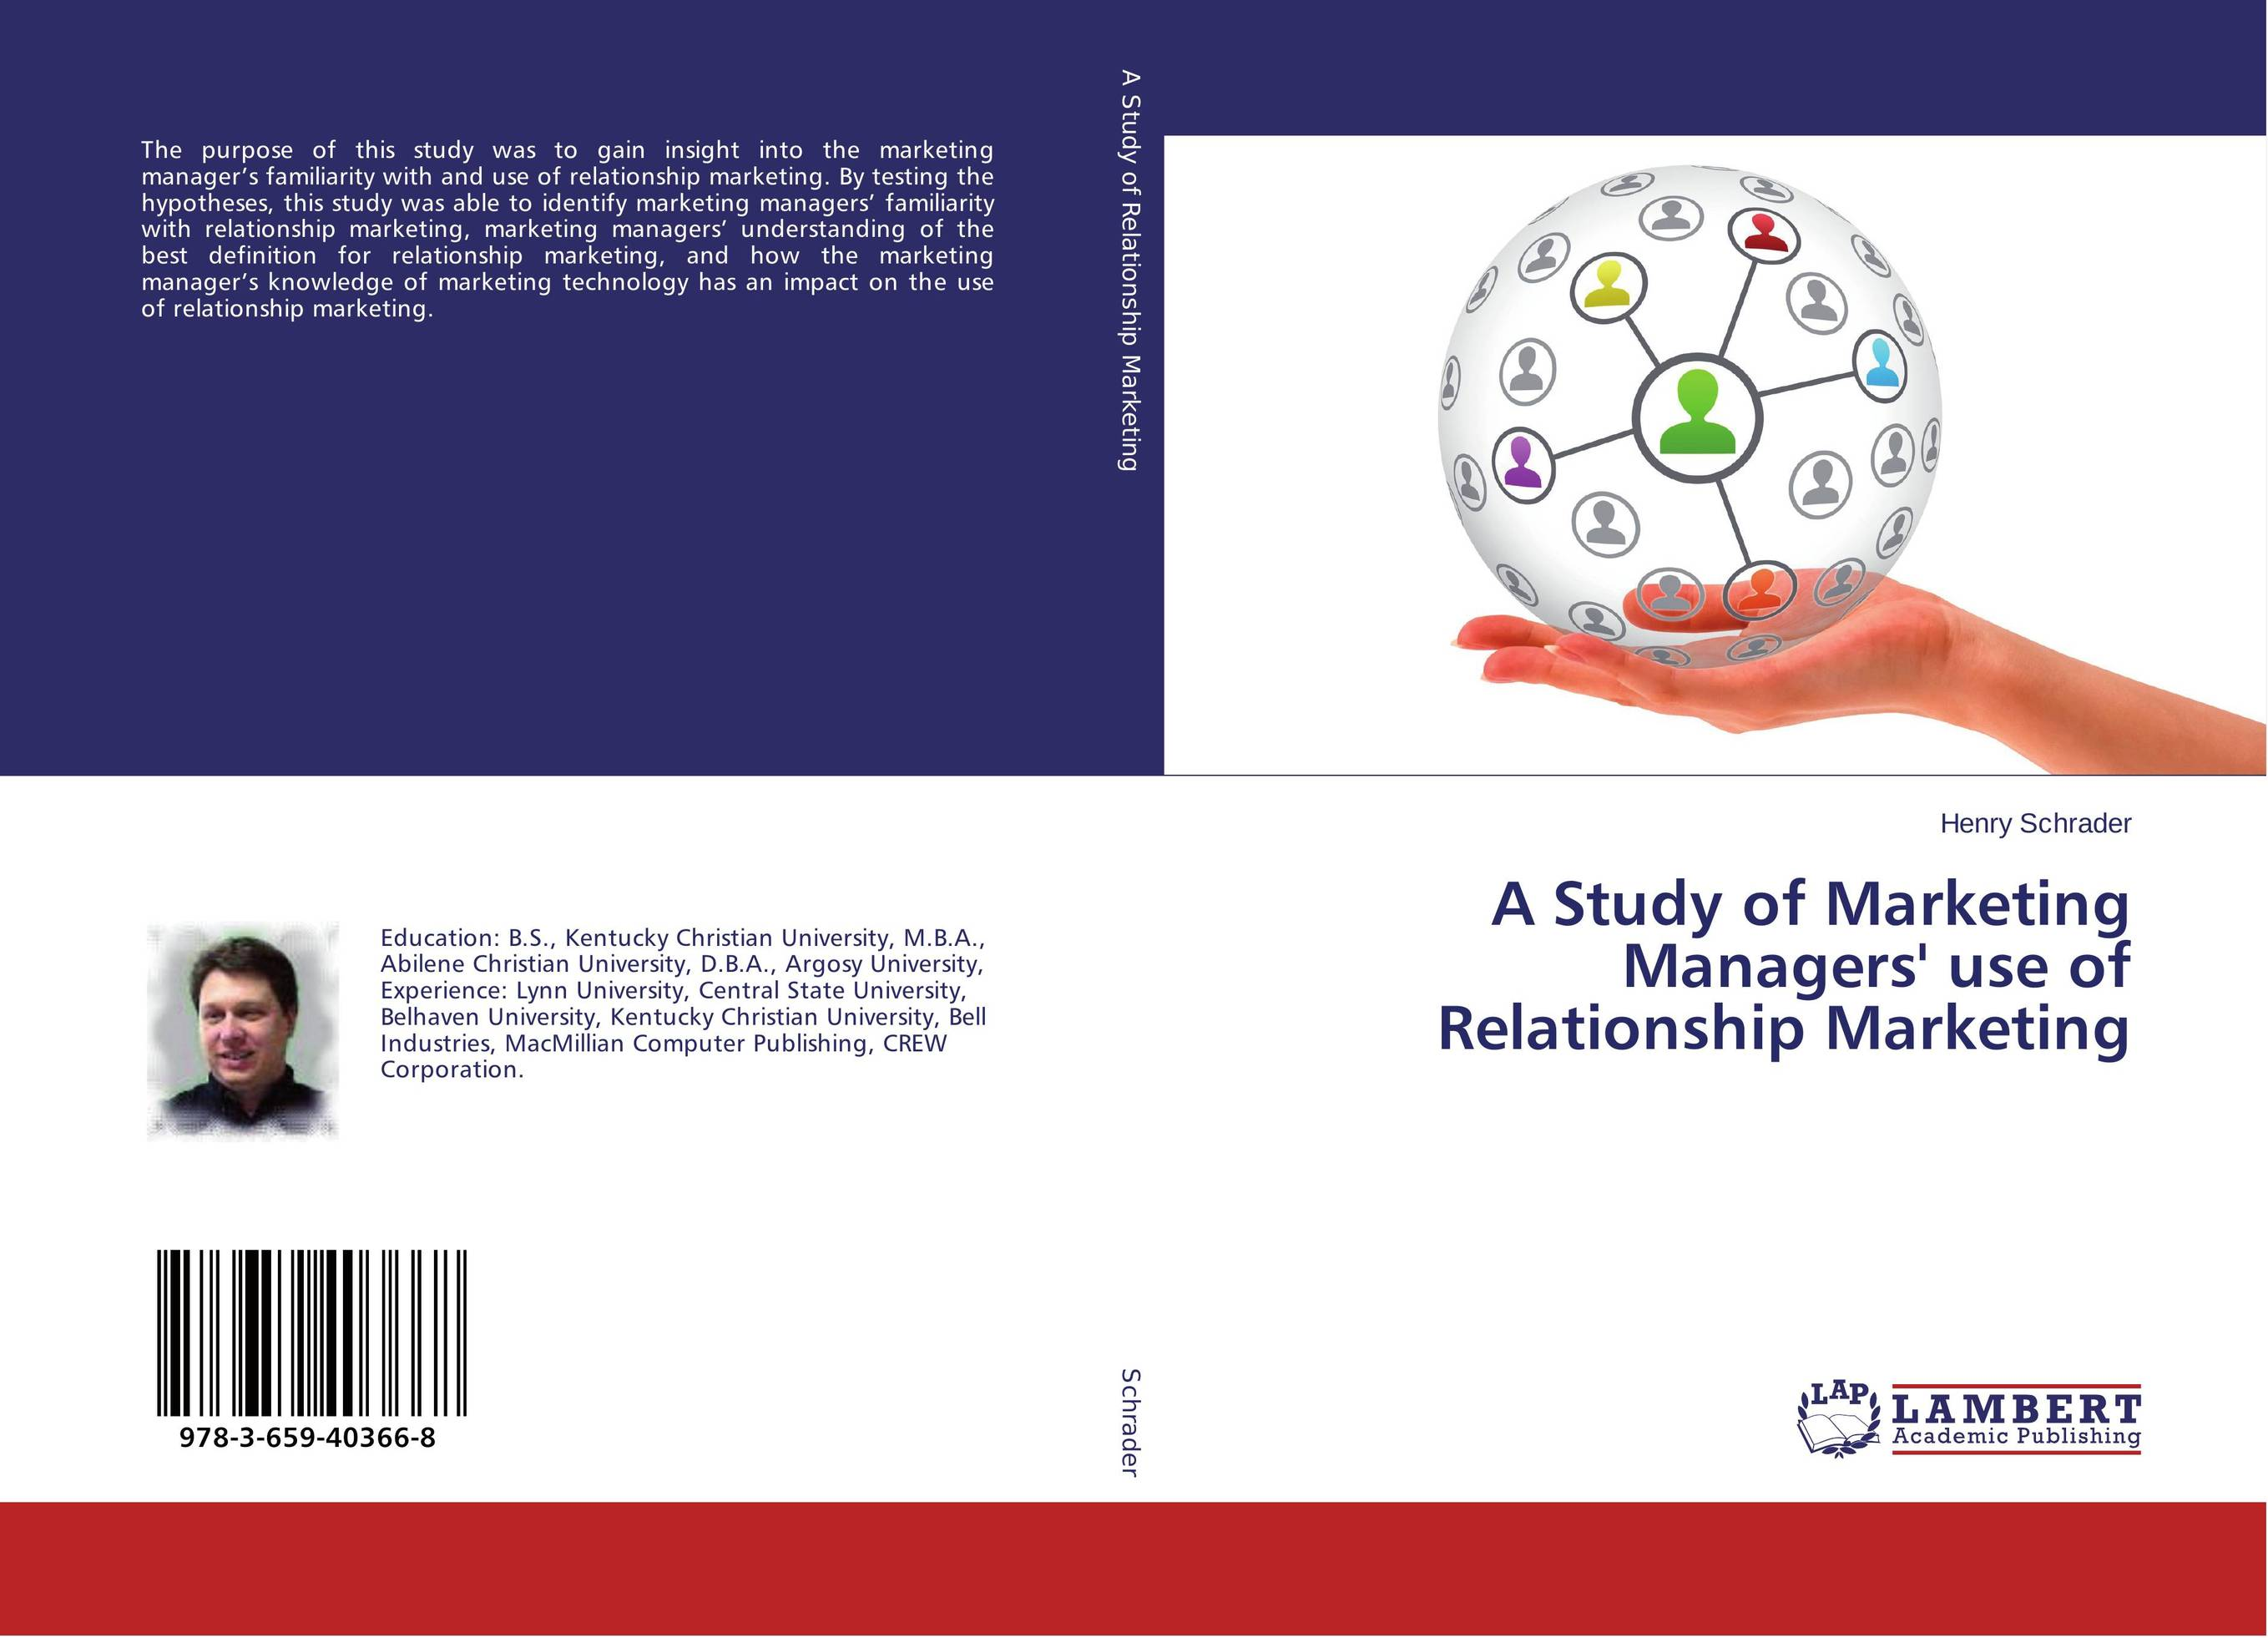 A Study of Marketing Managers' use of Relationship Marketing email marketing